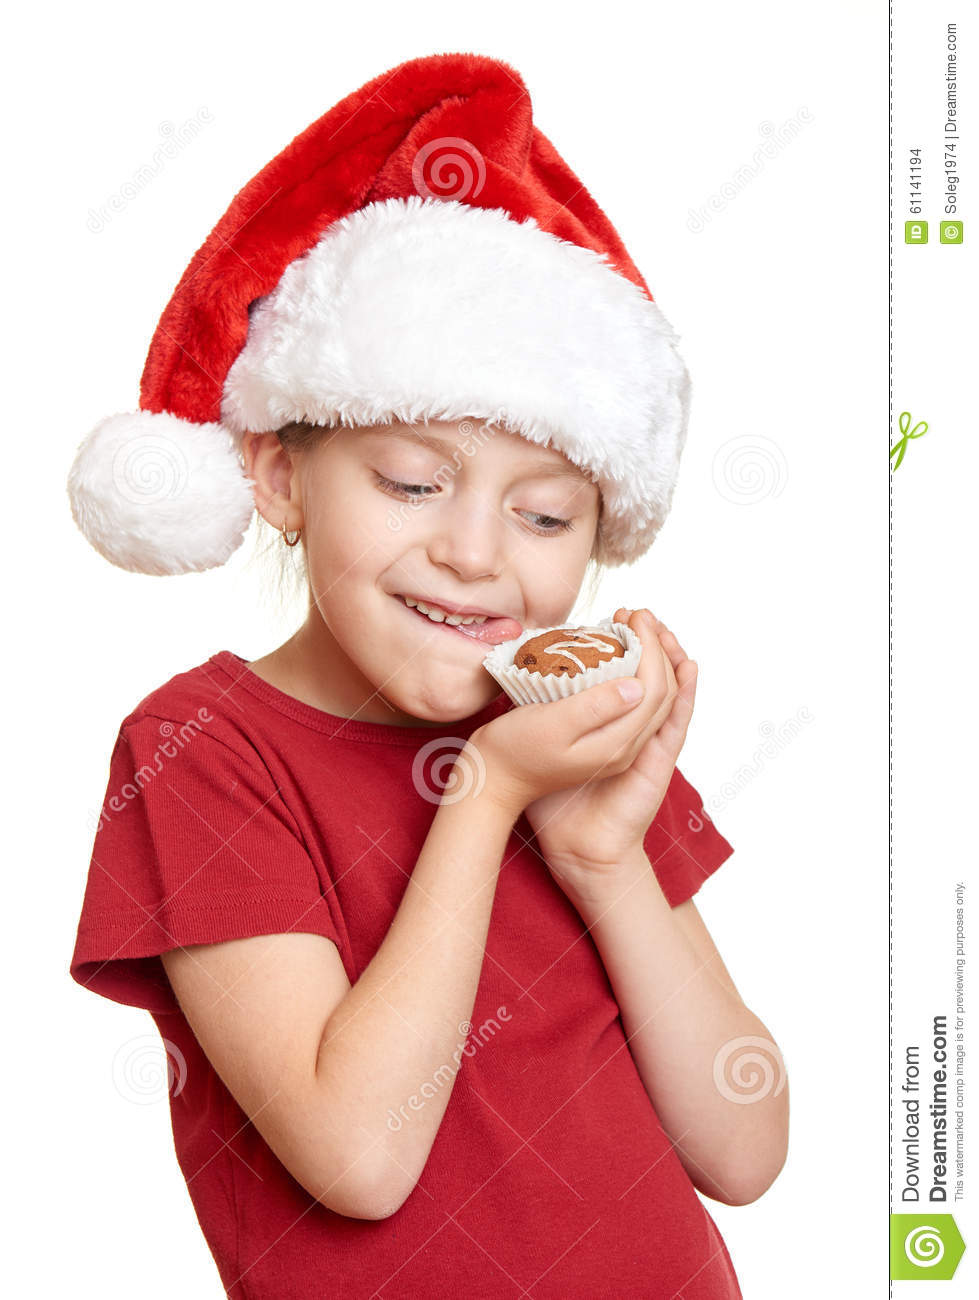 Girl In Santa Hat Eat Cookies And Lick Oneself Winter Holiday